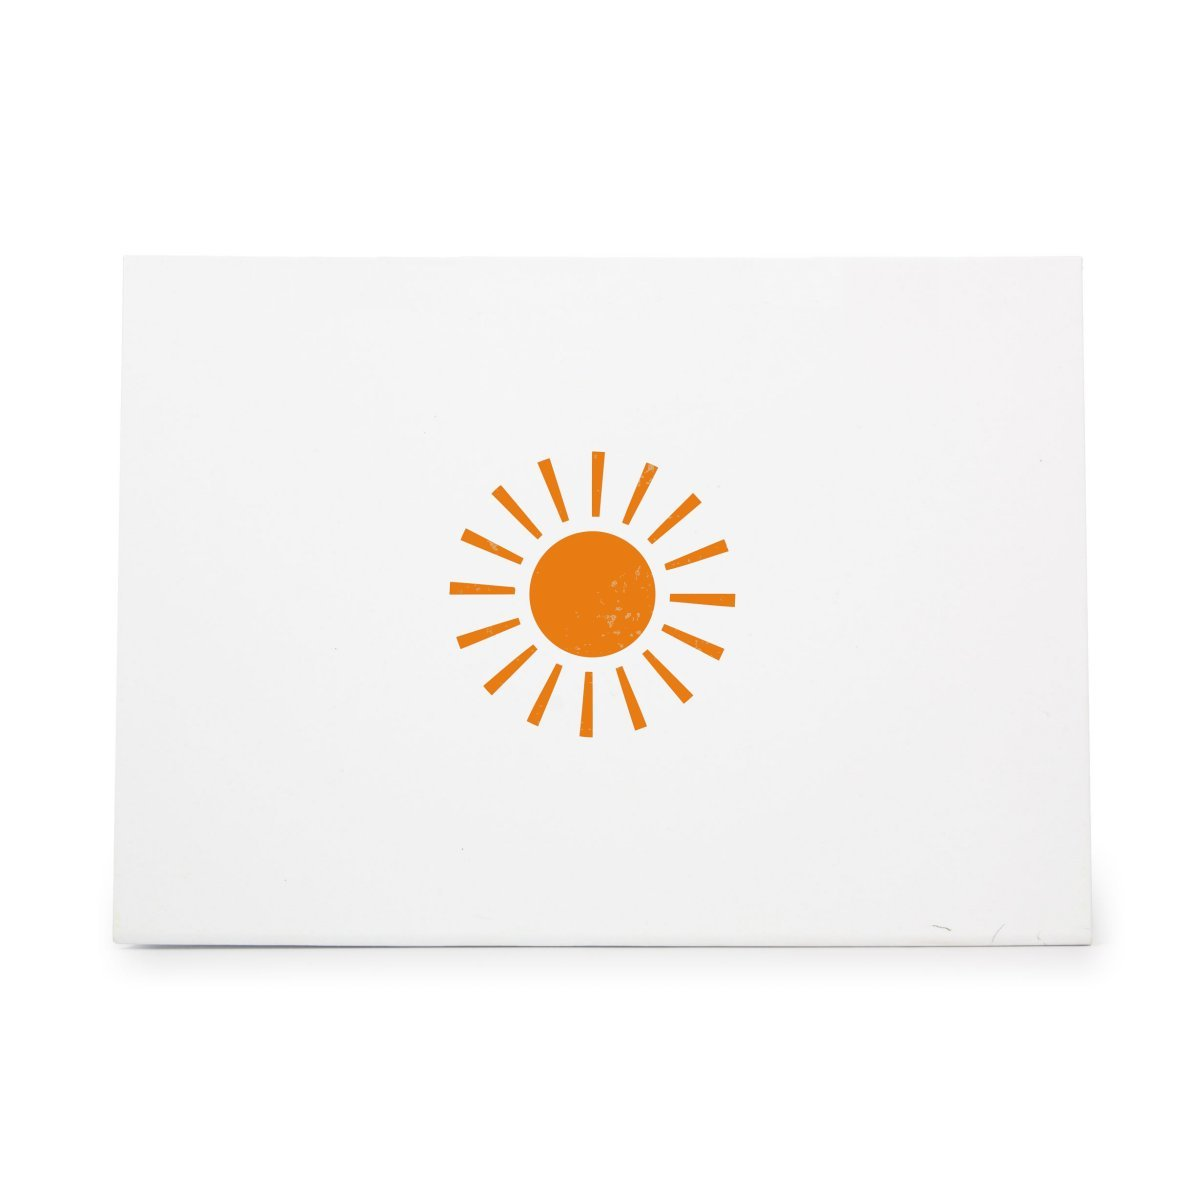 Crafts Sun Weather Conditions Warmth Sunshine Style 3872 Card Making Ink Stamping Crafts Rubber Stamp Shape great for Scrapbooking